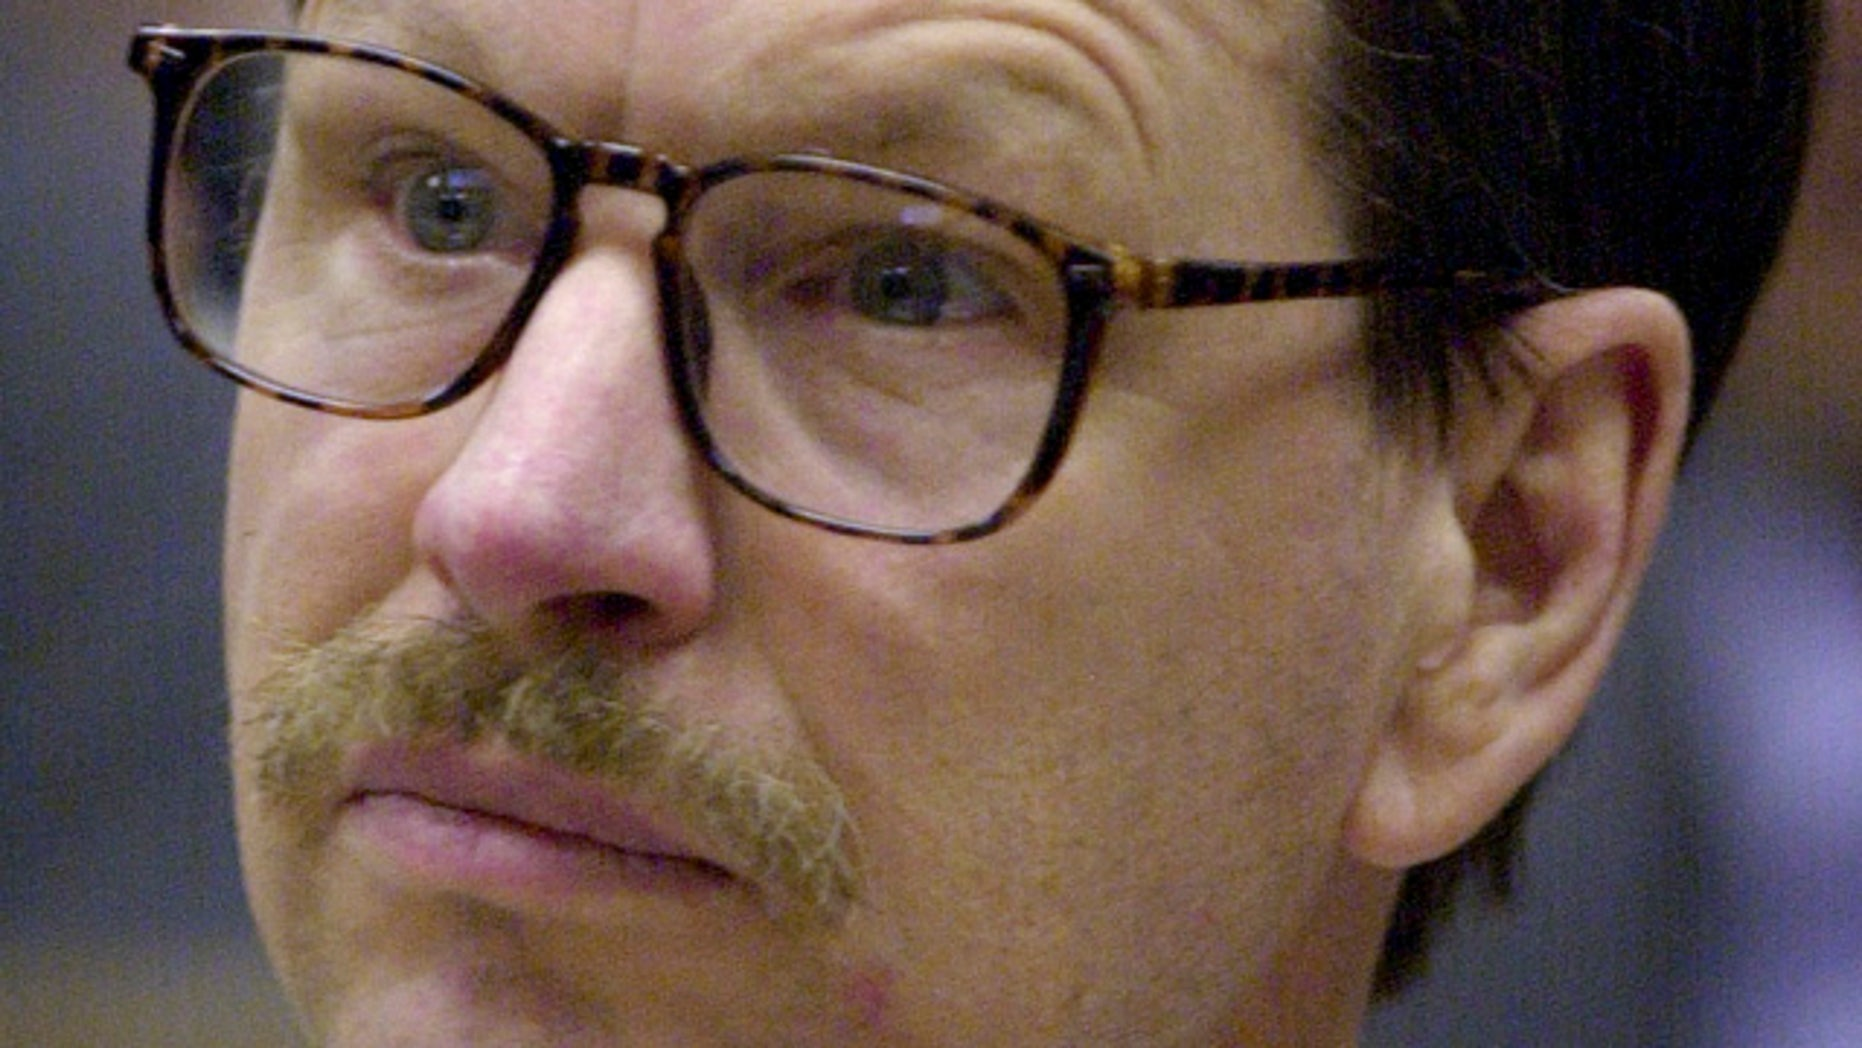 March 27, 2003: Gary Leon Ridgway appears at a pretrial hearing in King County Superior Court in Seattle. Ridgway, already serving 48 life terms in the Green River killings, is expected to plead guilty to Rebecca Marrero's murder at his arraignment Friday at the King County Regional Justice Center in Kent, Wash. (AP)